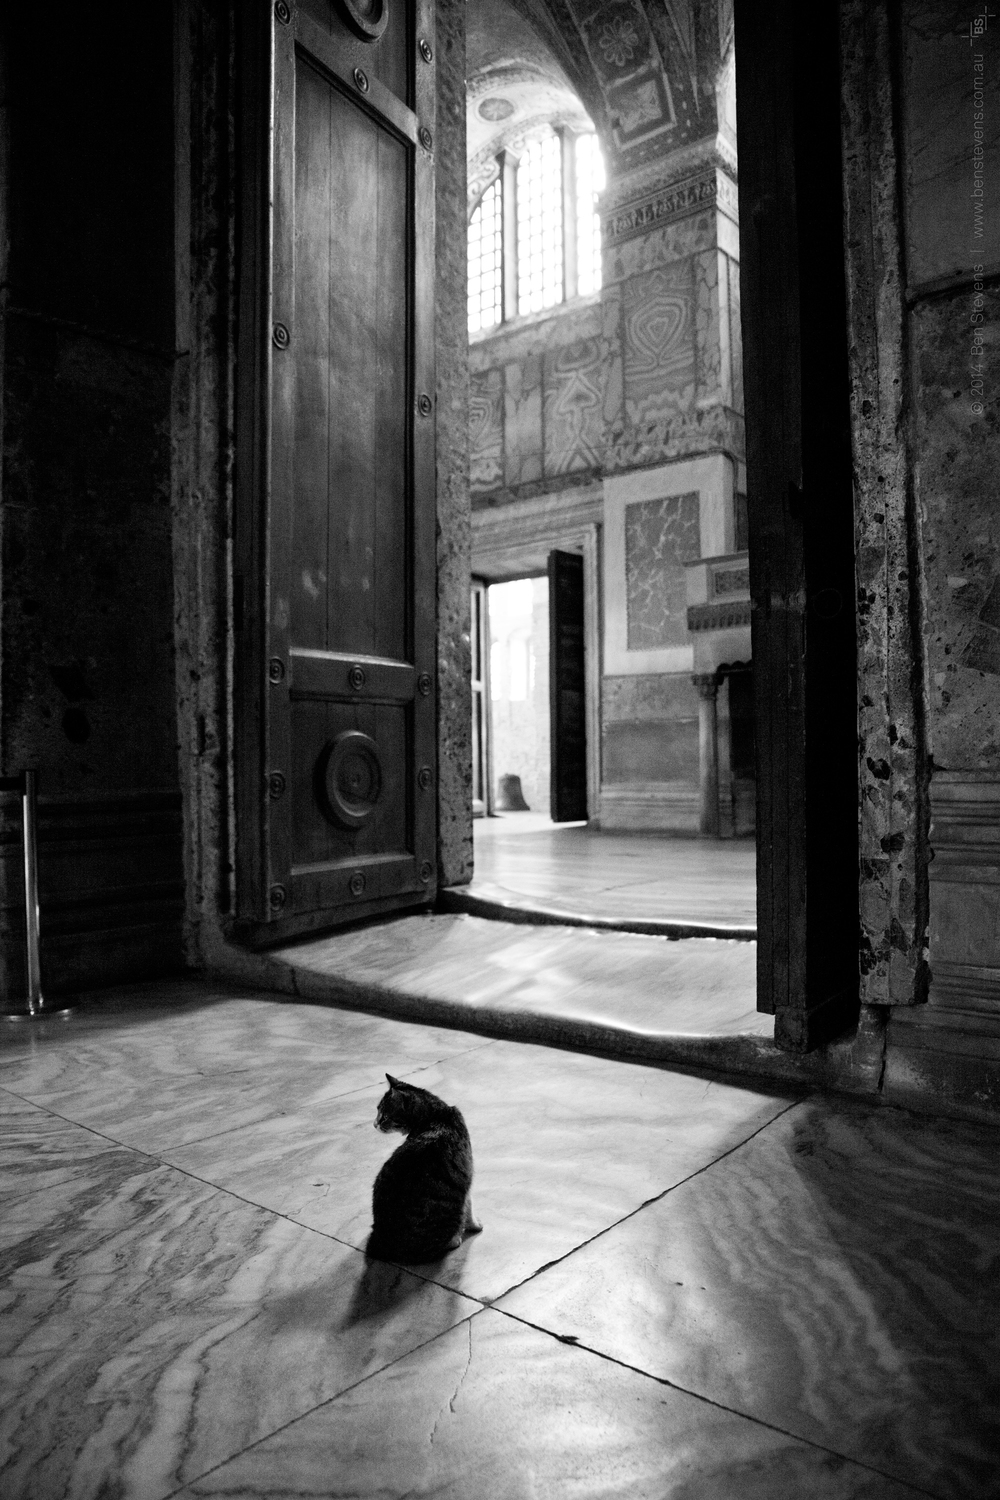 Habitat |Istanbul, Turkey March 2014 One of the many cats that survive inside the walls of Hagia Sofia, one of the world's oldest and most magnificent mosques. Purchase printshere